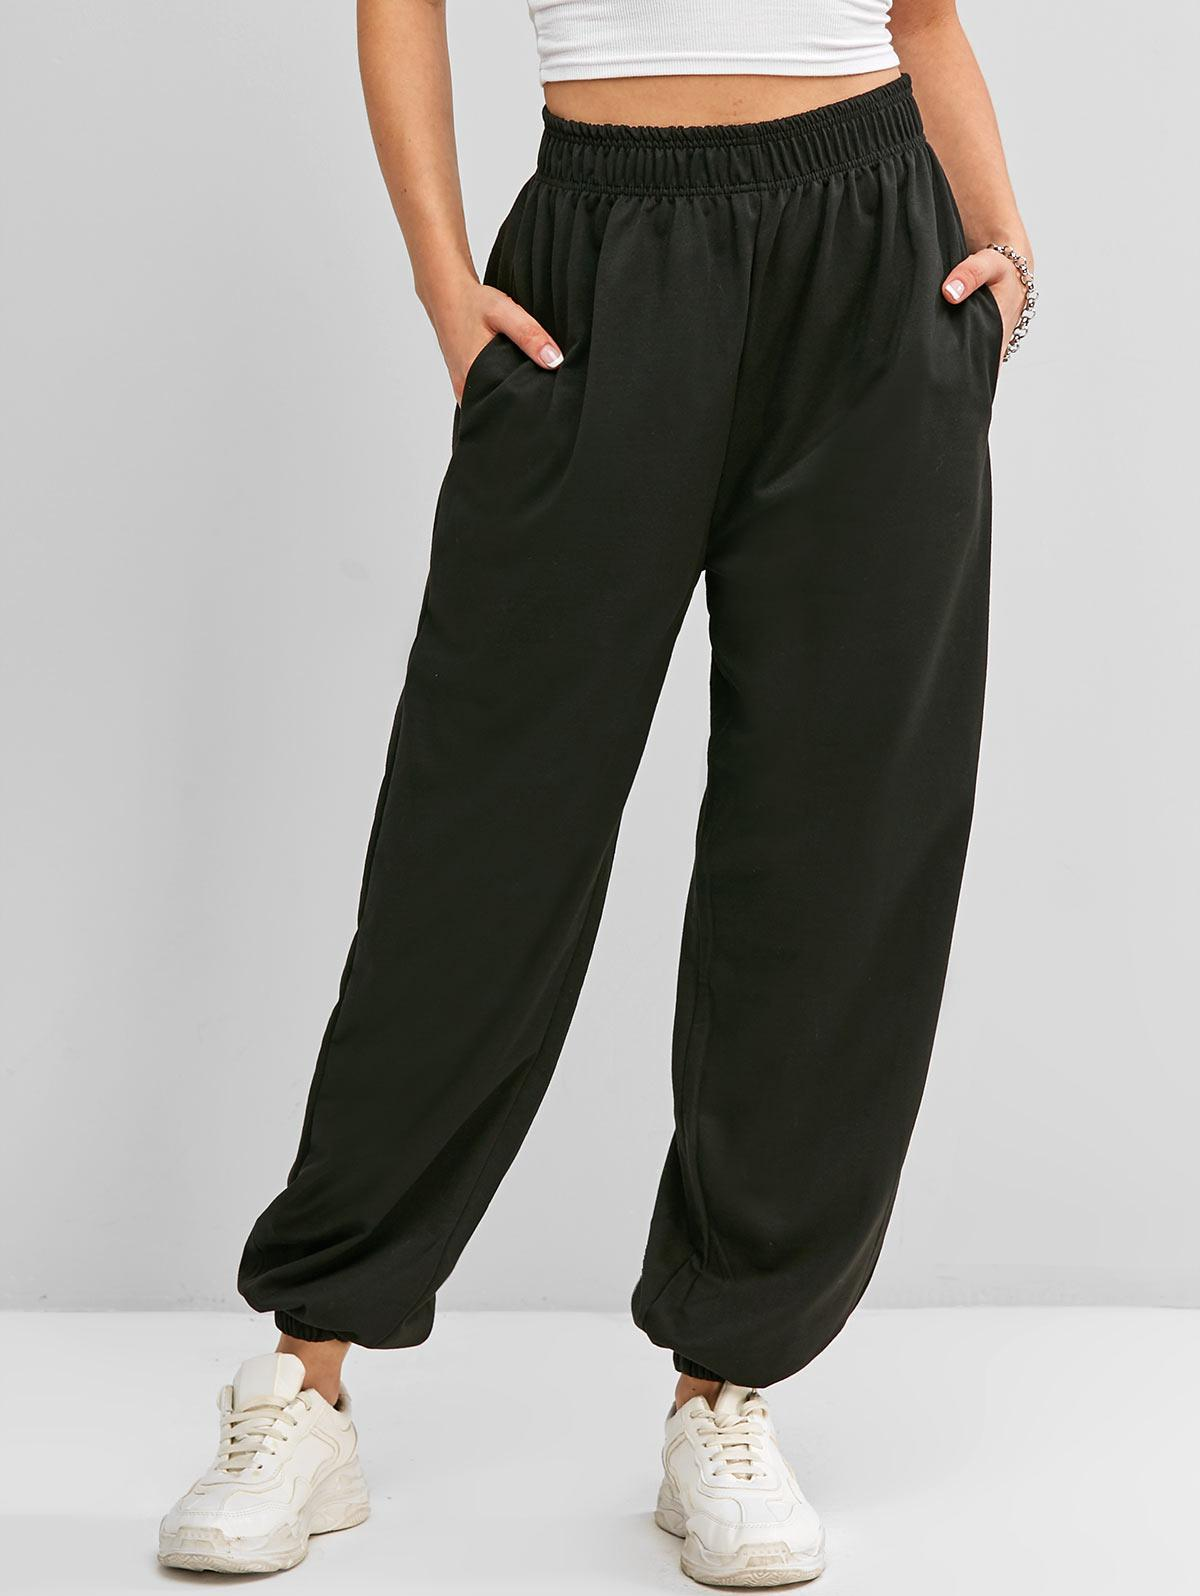 High Waisted Pocket Jogger Sweatpants